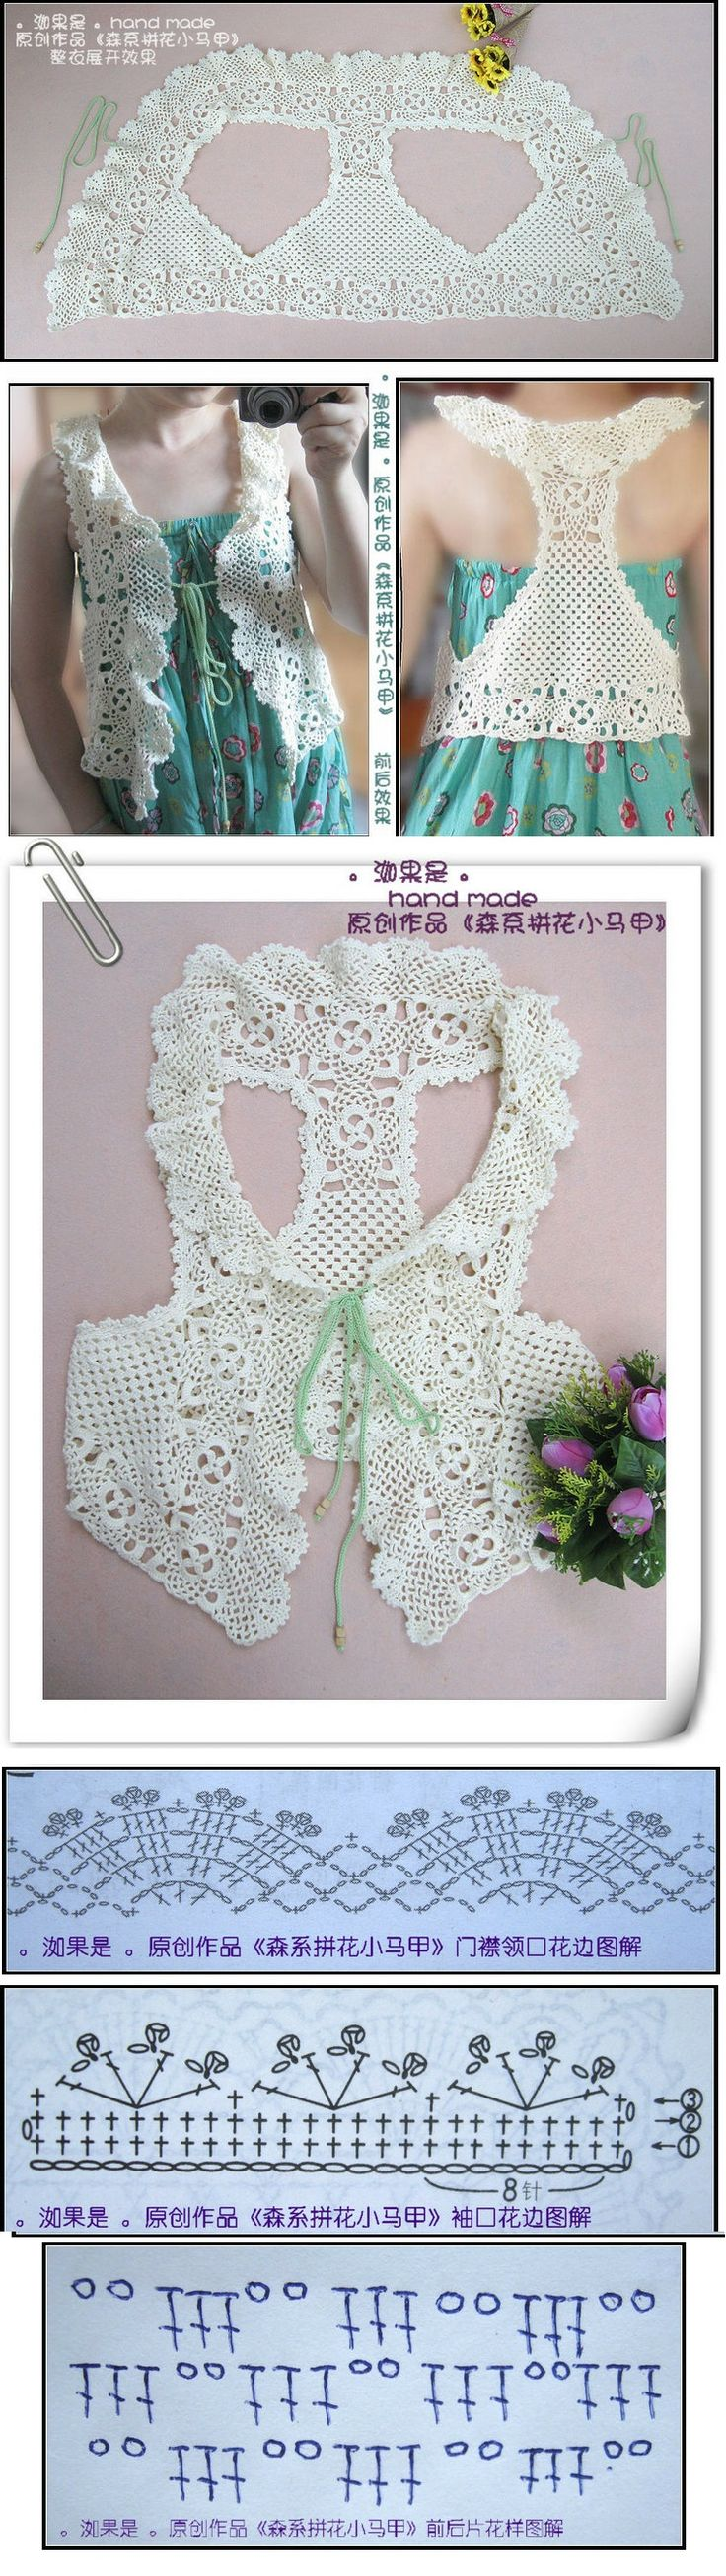 Pretty crocheted shrug diagrams